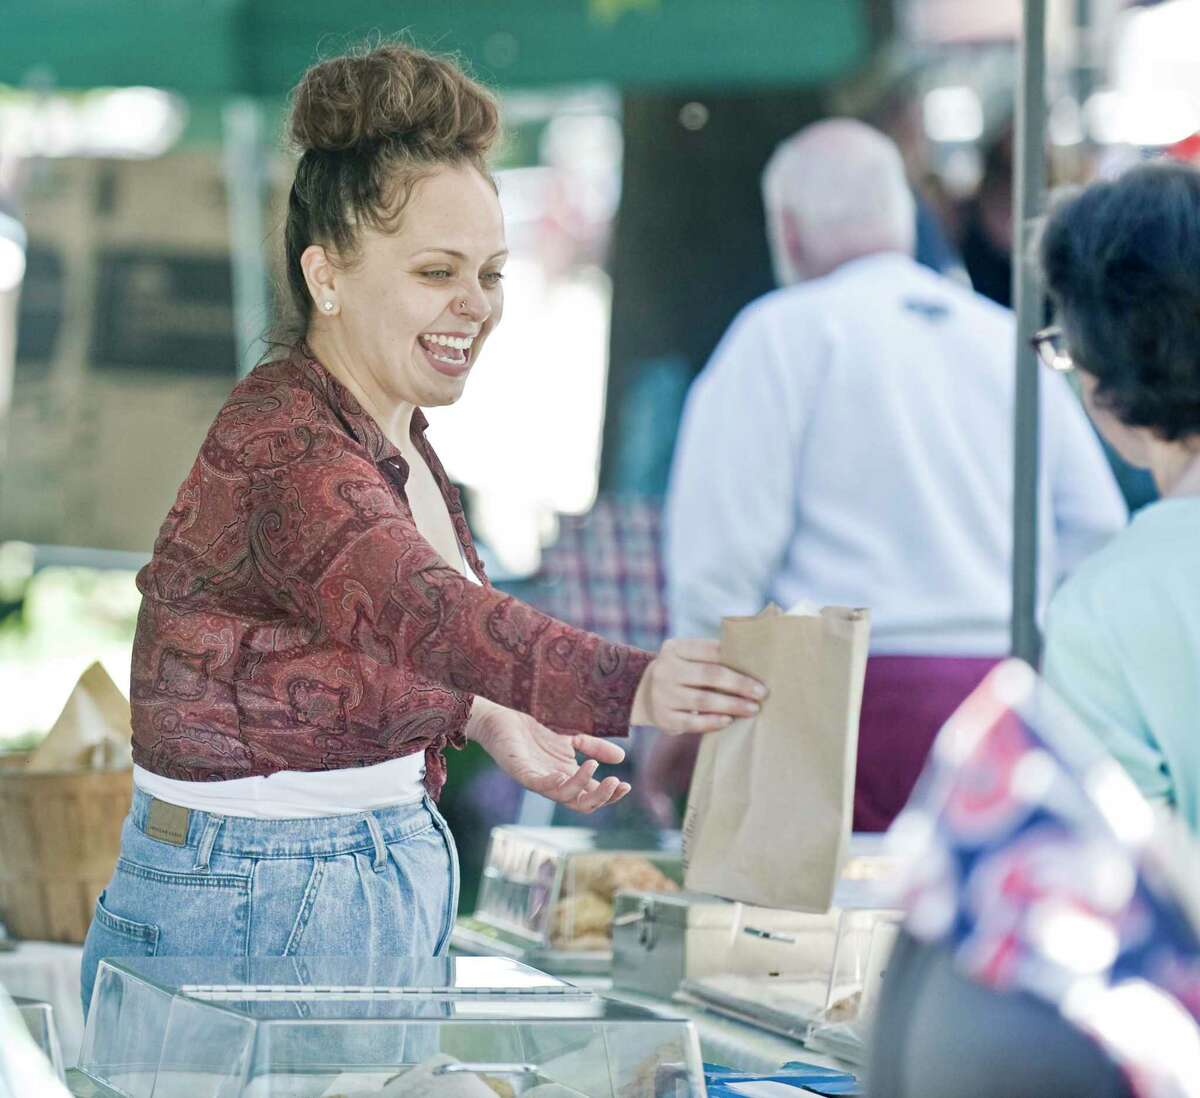 Amanda Hernandex, of the Green Granary in New Milford, selling scones at the Apple Festival on the New Milford town green. Saturday, Sept. 25, 2021